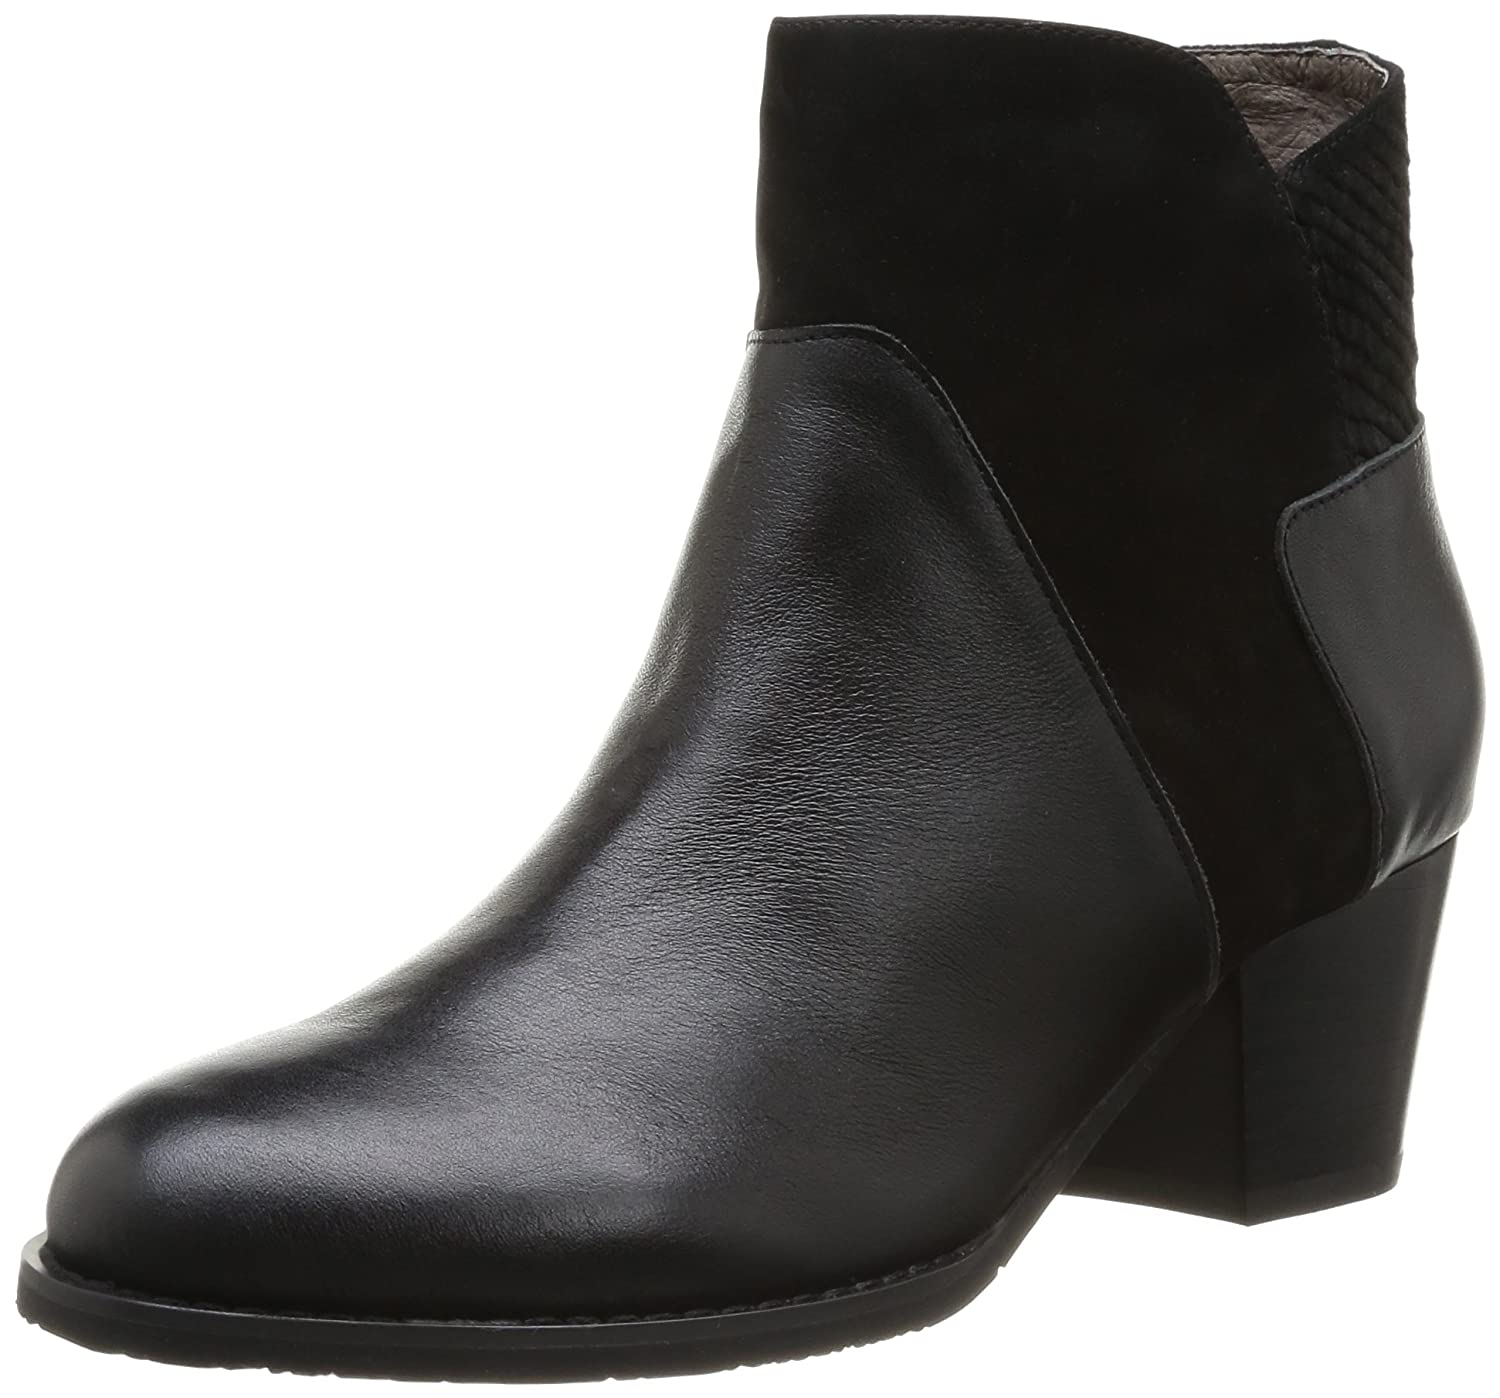 Esska Just - Botas para Mujer, Color Negro (Black), Talla 37